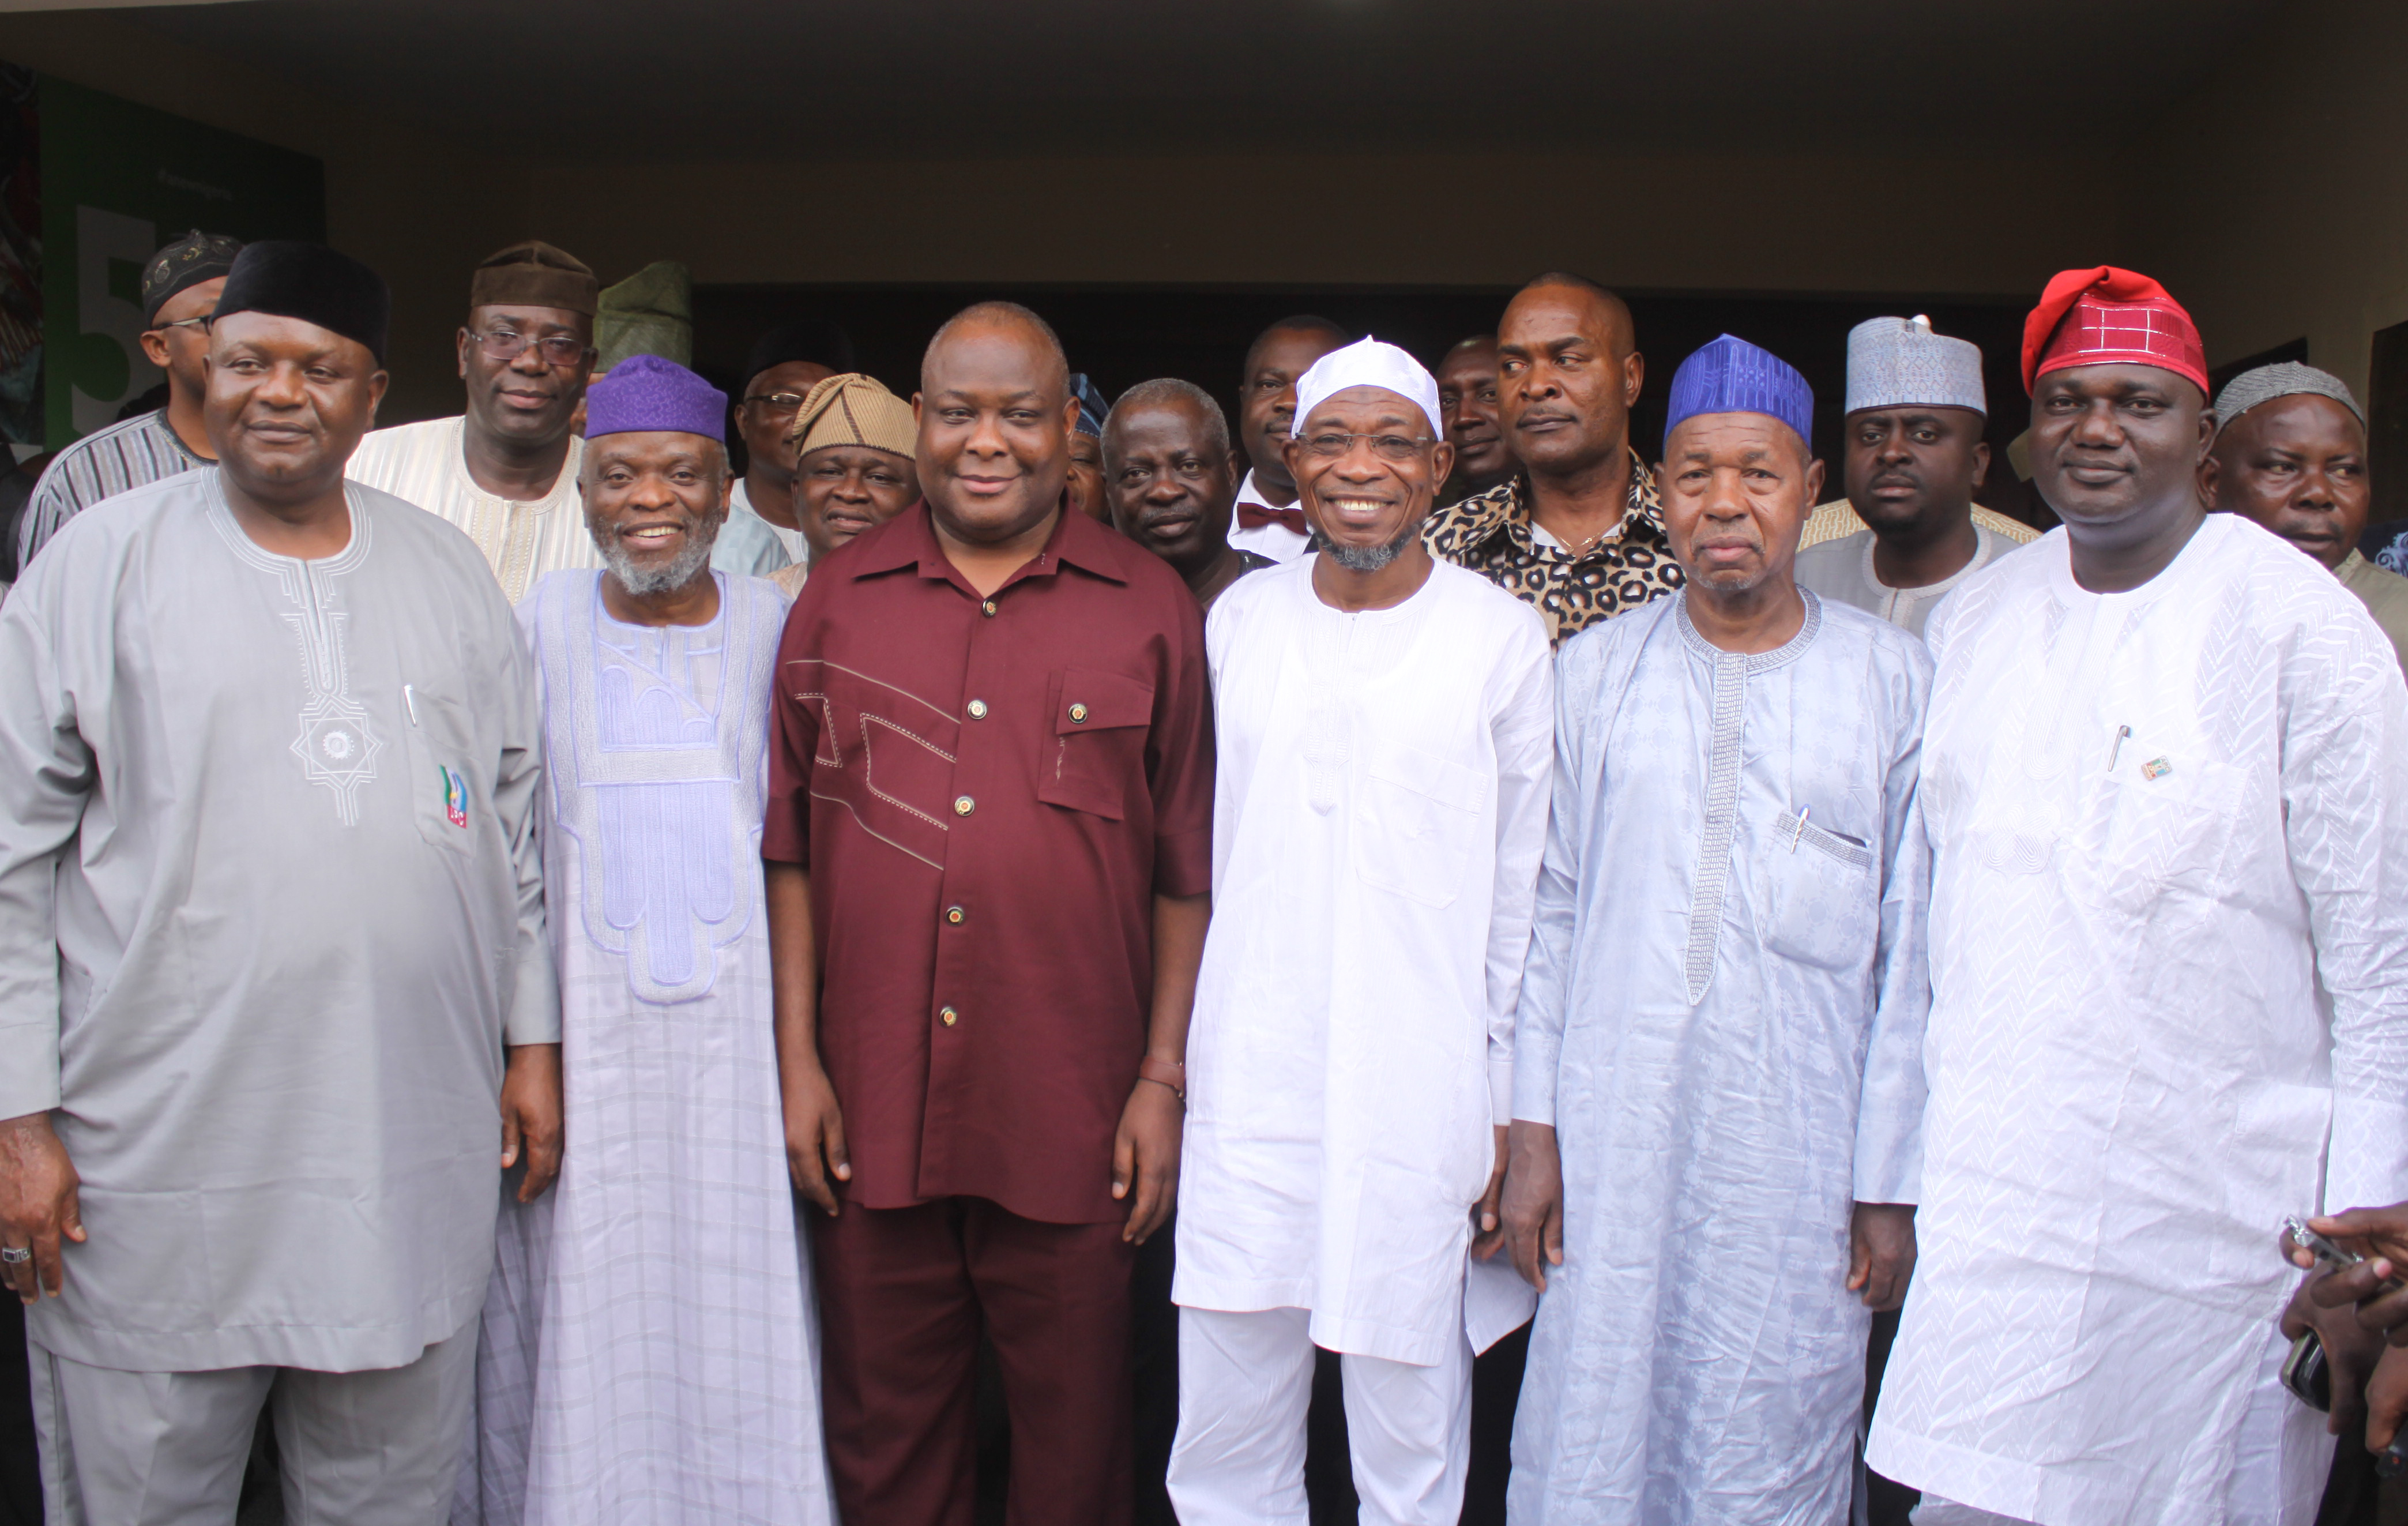 Osita Isunaso; Deputy National Chairman, APC, SenatorAminu Bello Masari and Osun State Governor Raufu Aregbesola, during the submission of intention form for 2nd term in office by Aregbesola at APC Secretariat, Abuja on Monday 24-03-2014